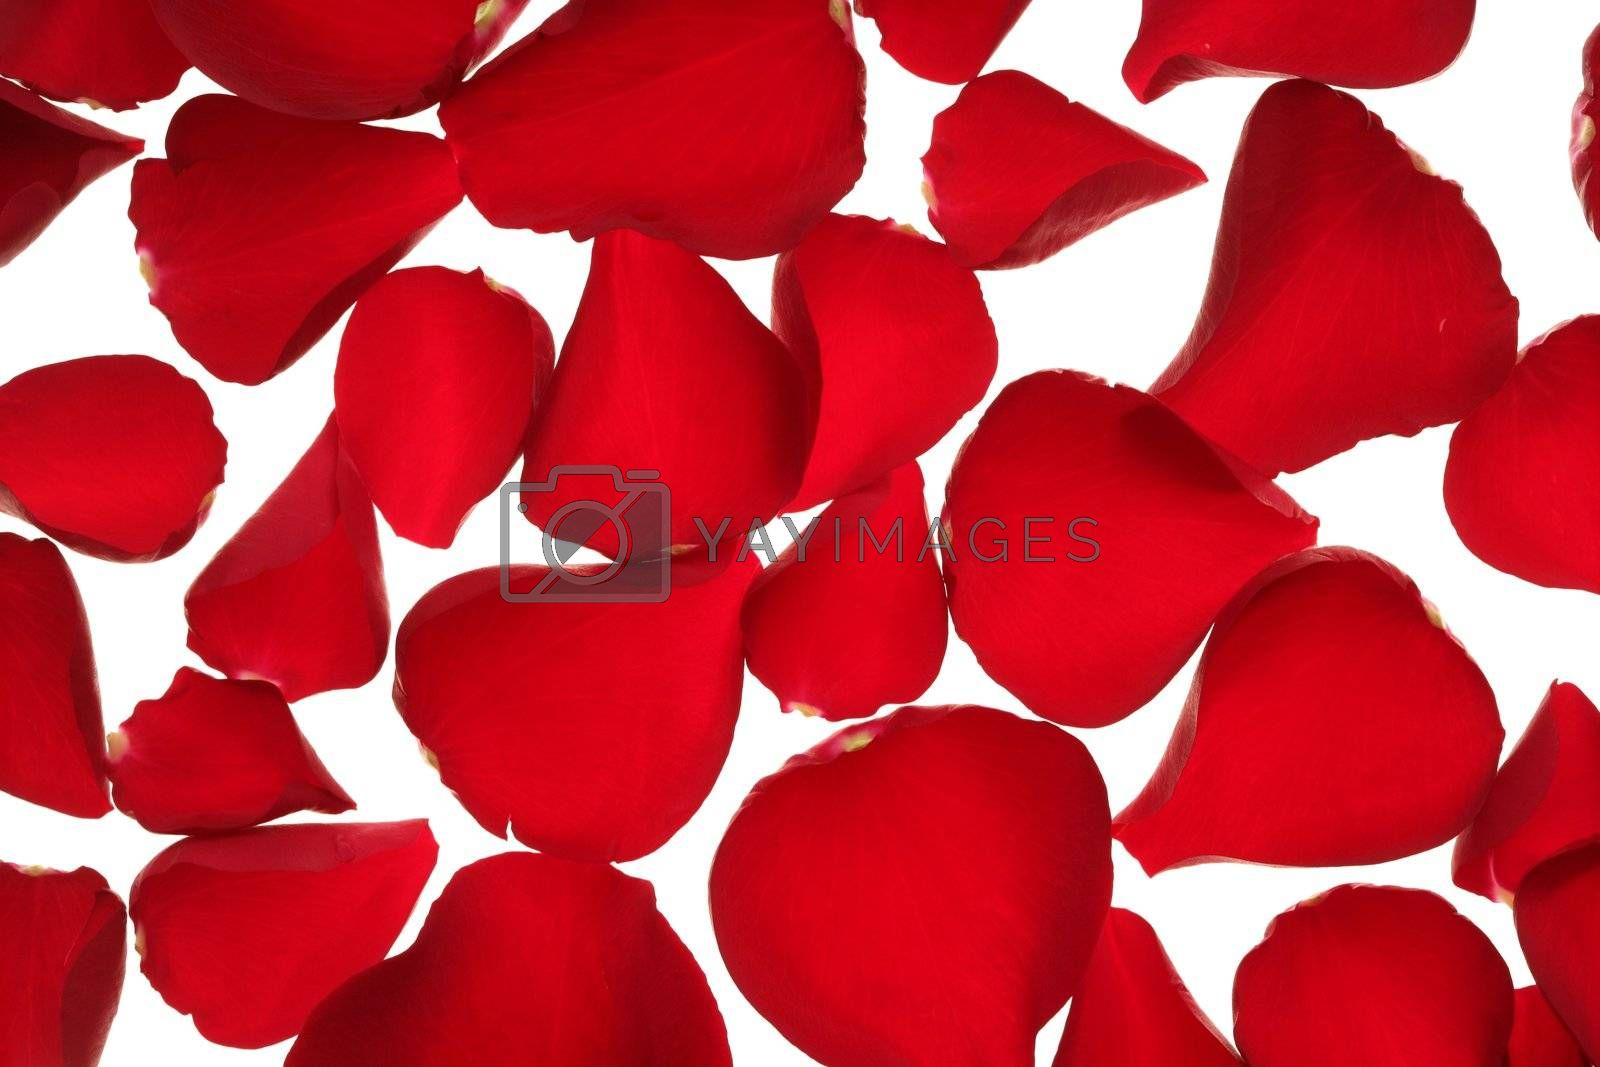 Royalty free image of Red rose petals texture background by lunamarina